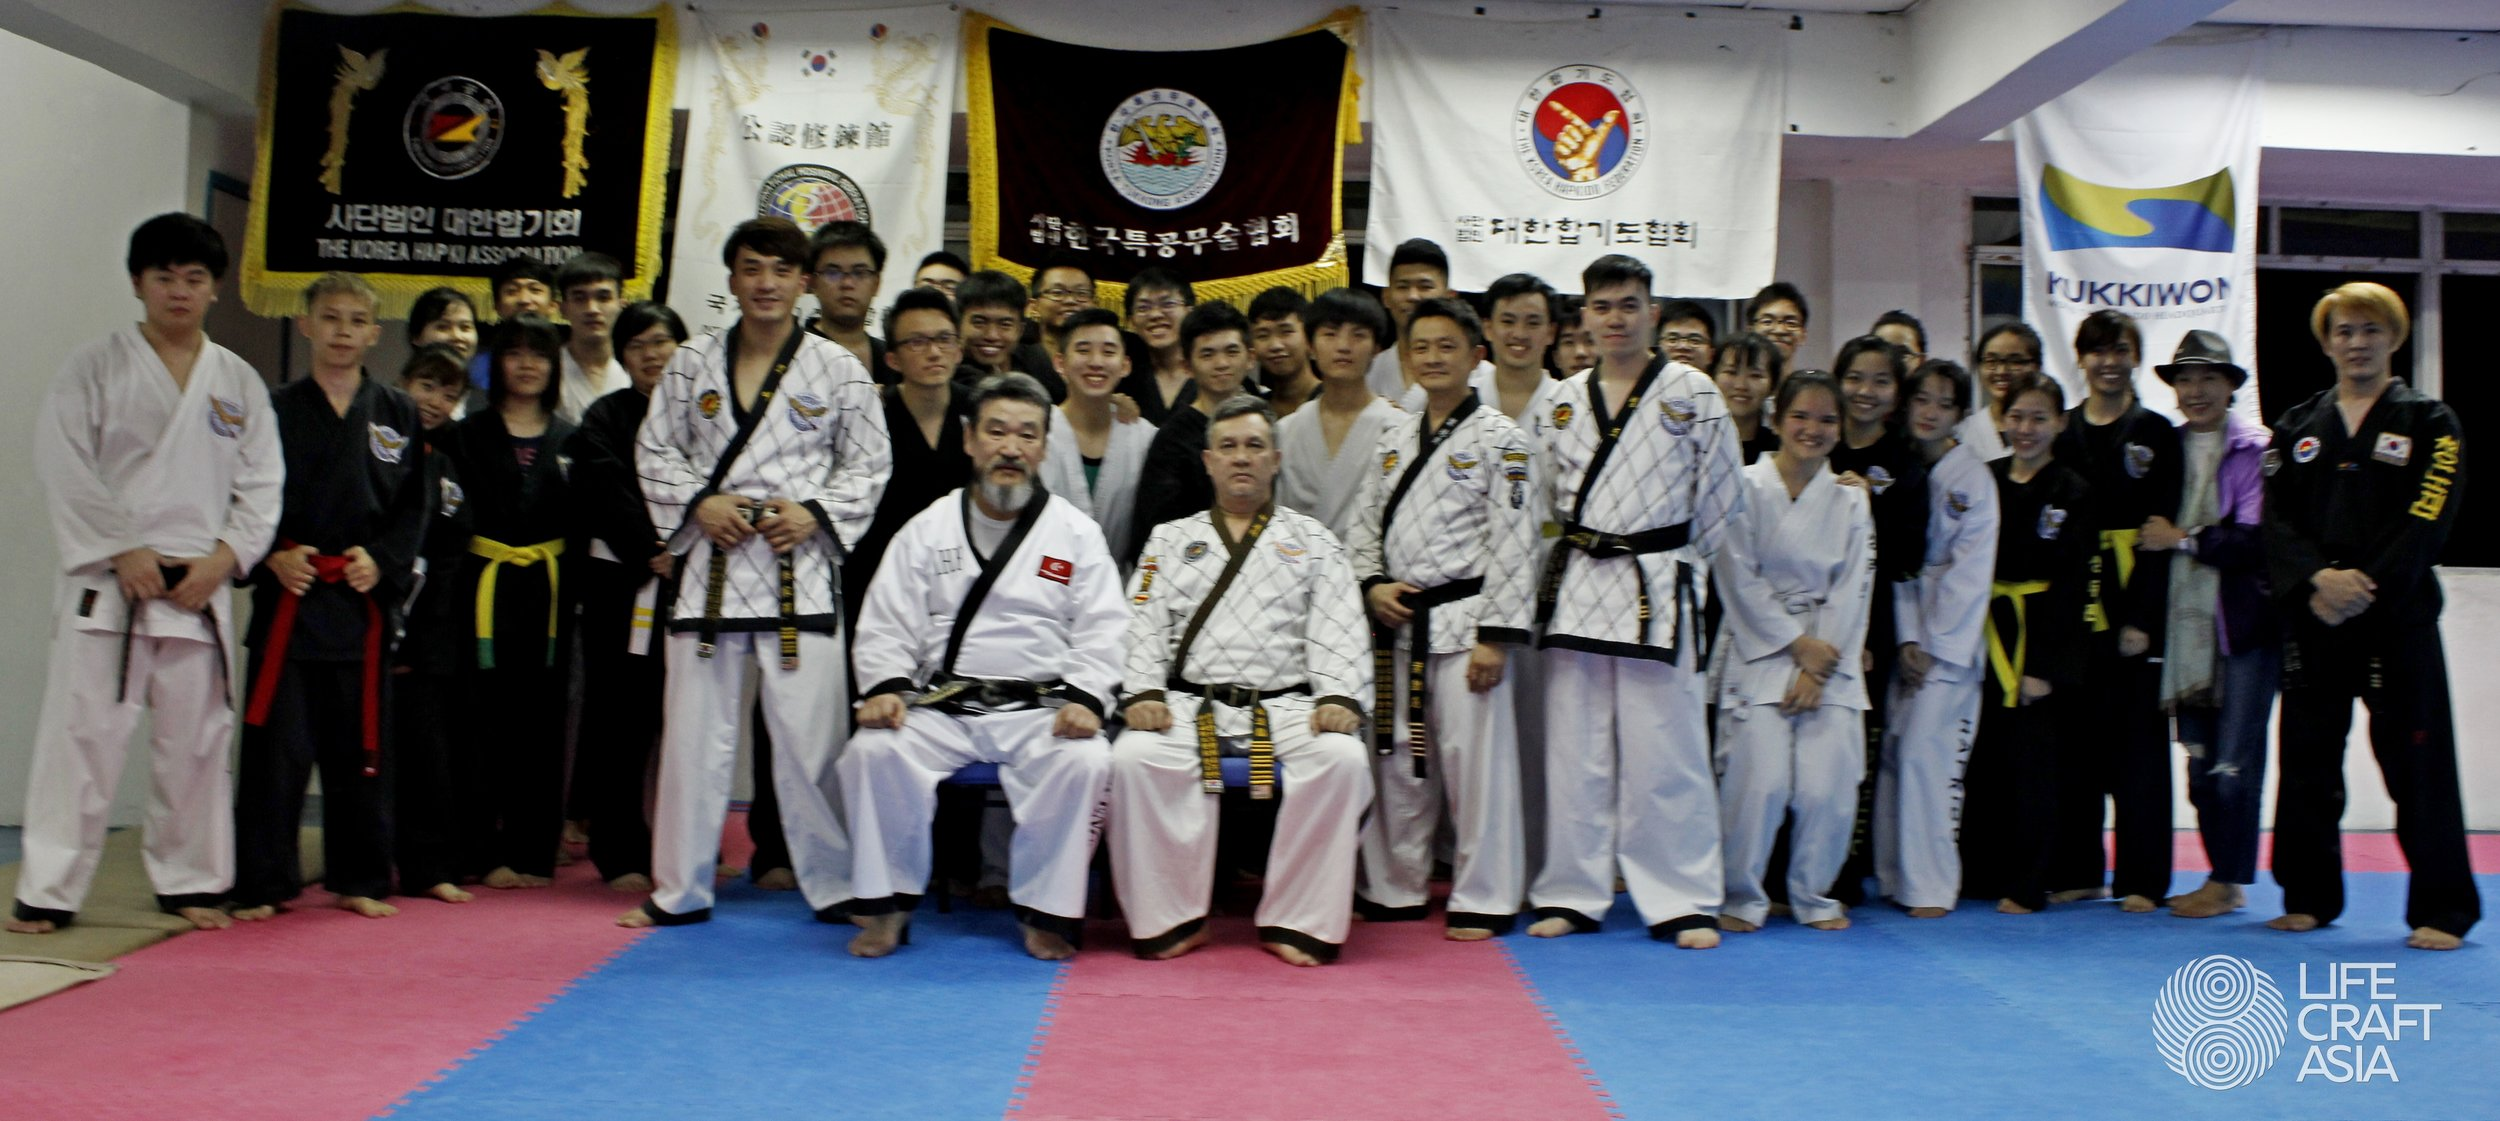 Group photo with Grand Master Hwang Young Jin